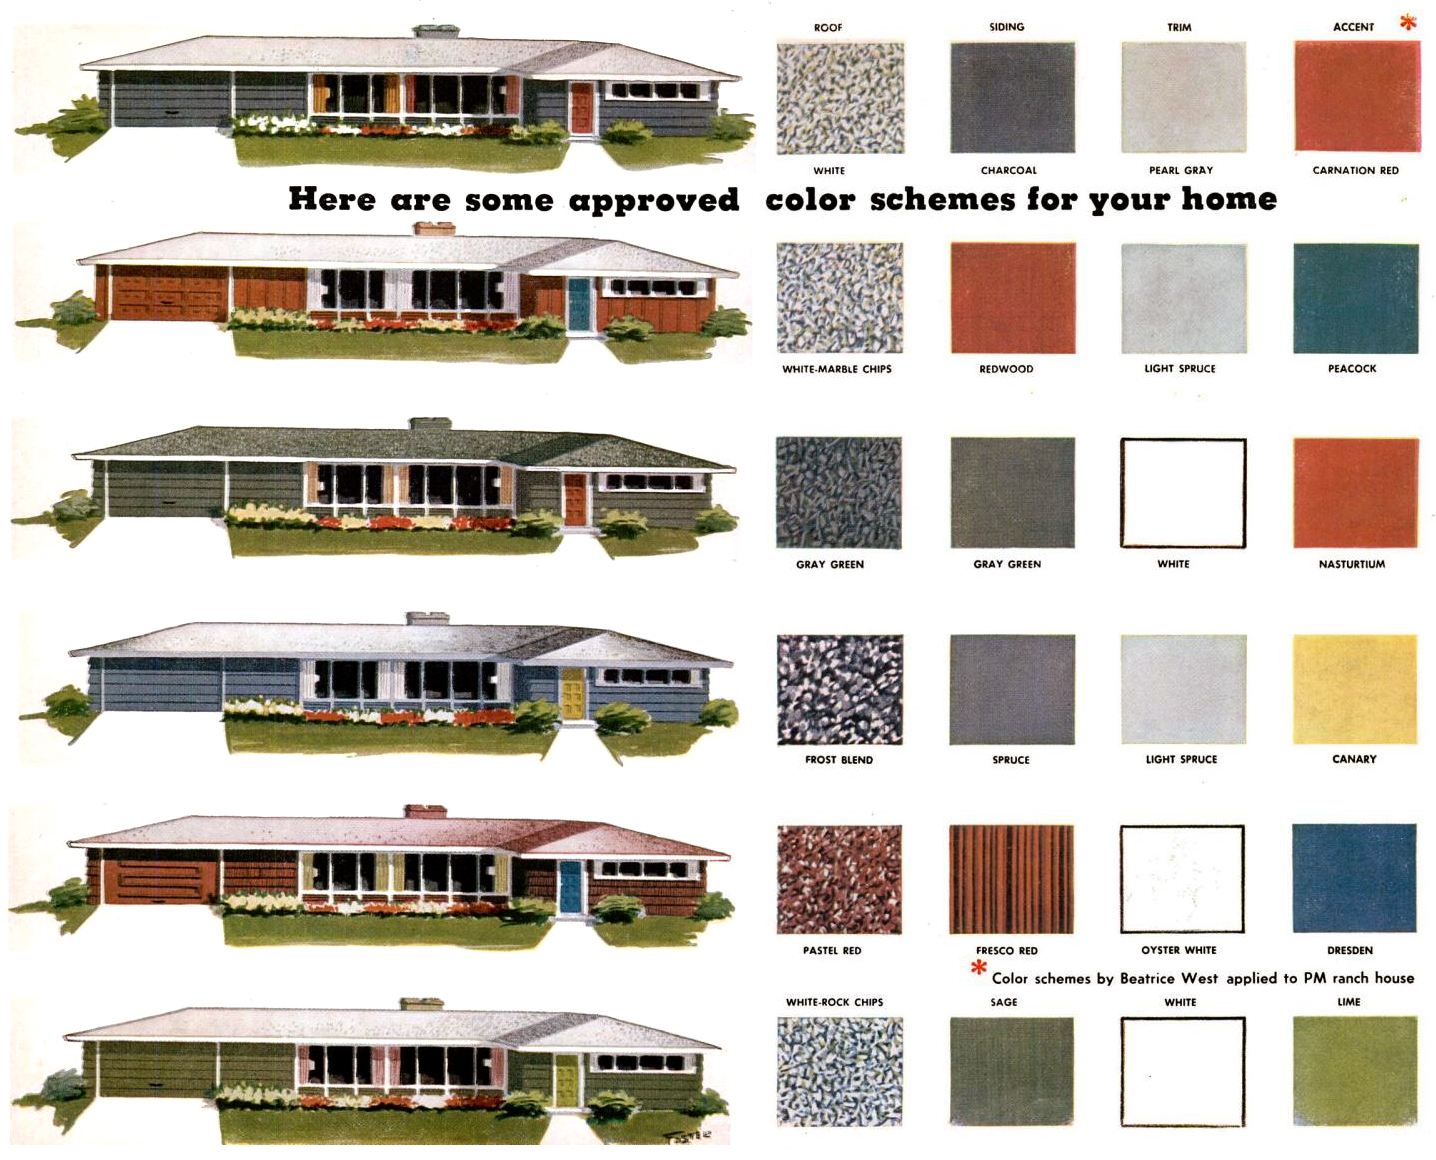 Mad for Mid-Century: Exterior Mid-Century Color Palette Exterior House Color Schemes on exterior house colors victorian era, exterior house trim, exterior house facade, exterior siding colors, exterior house paint colors sherwin-williams, exterior house shutters, exterior house diagram, exterior house ideas, exterior house gray and yellow, exterior house colors for small homes, exterior house construction, exterior home colors with brown roof, exterior color combinations for country homes, exterior house paint examples, exterior house patterns, exterior house colors examples, exterior house colors and shapes, exterior house colors with brick, exterior house colors blues only, exterior house designs,